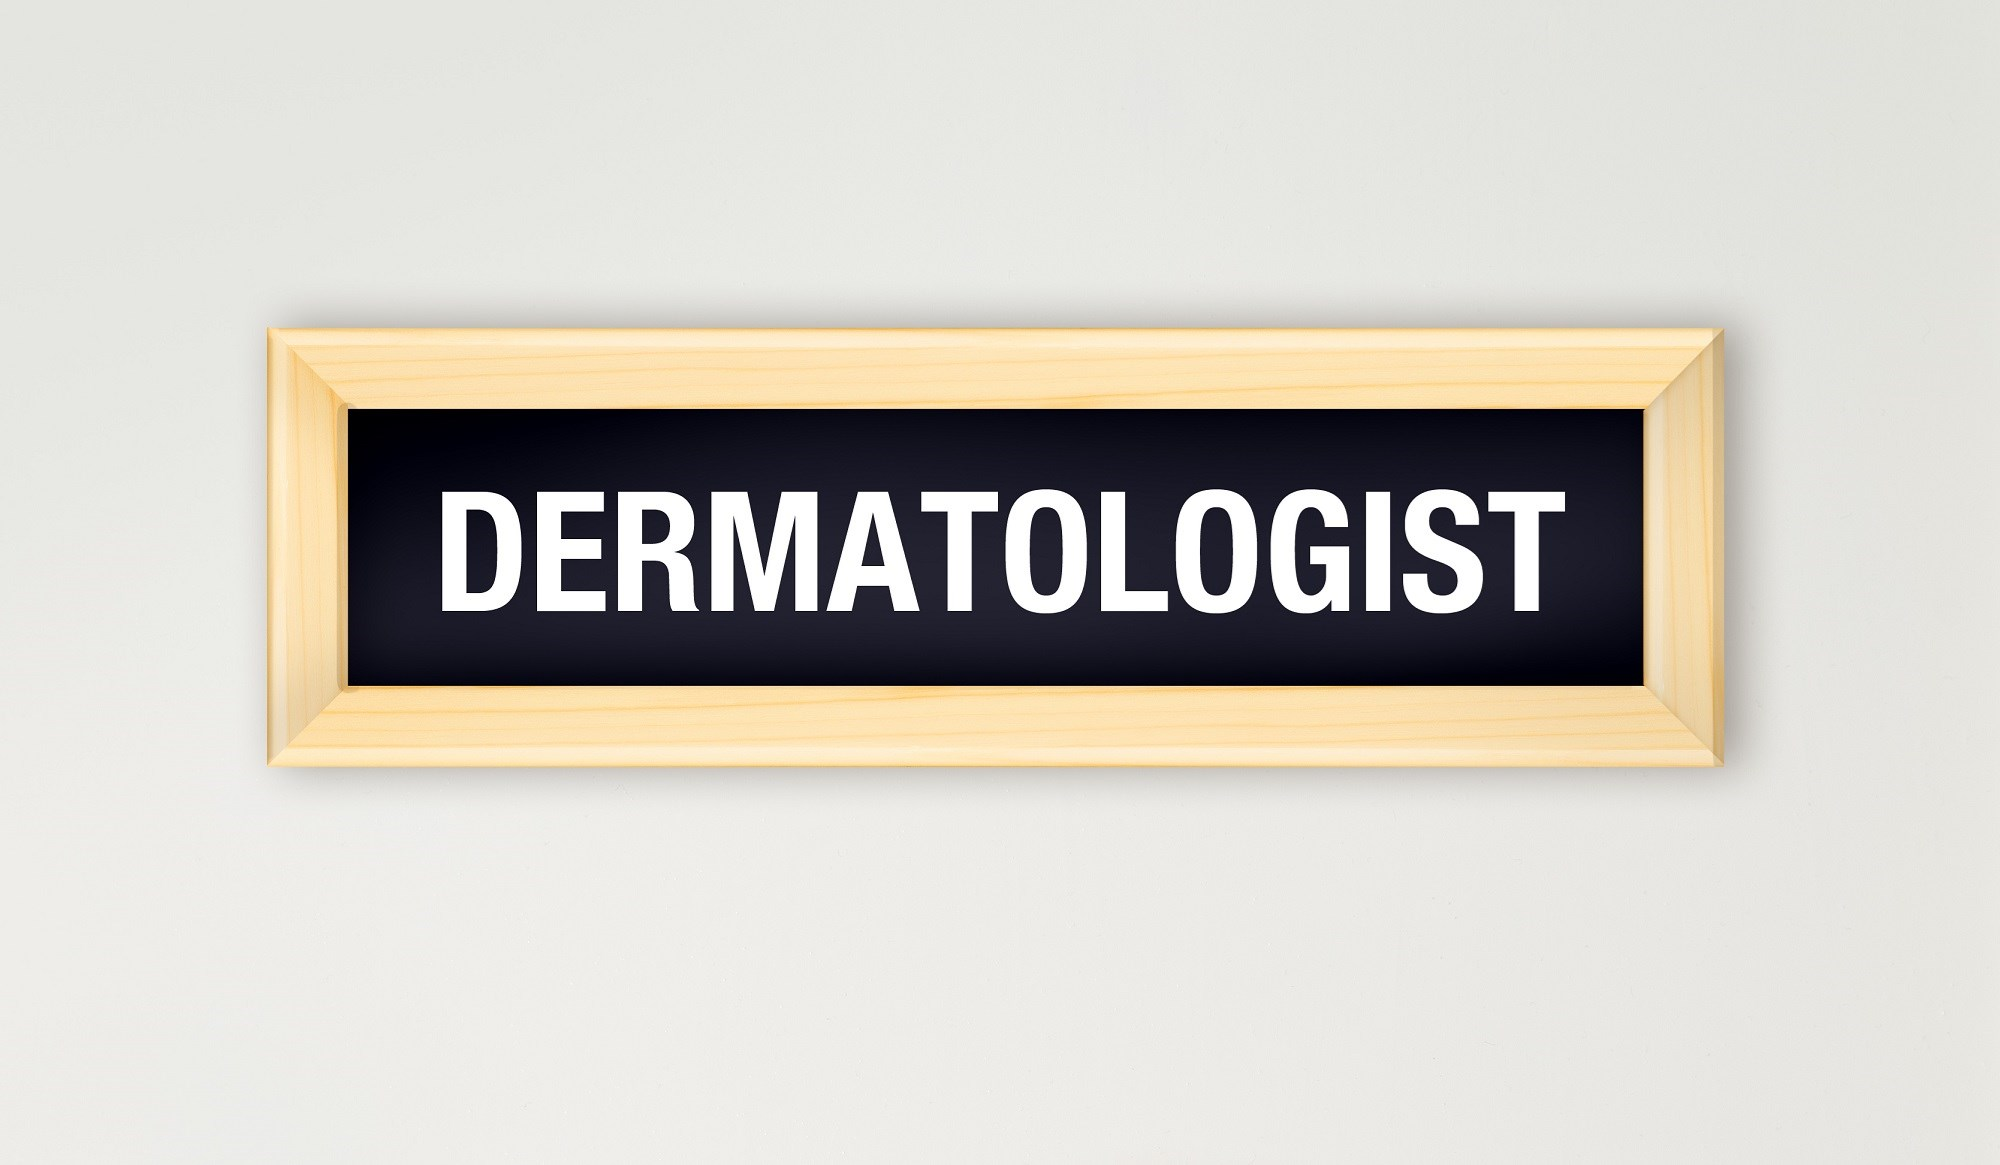 Socioeconomic, Demographic Characteristics Influence Access, Use of Dermatology Outpatient Care